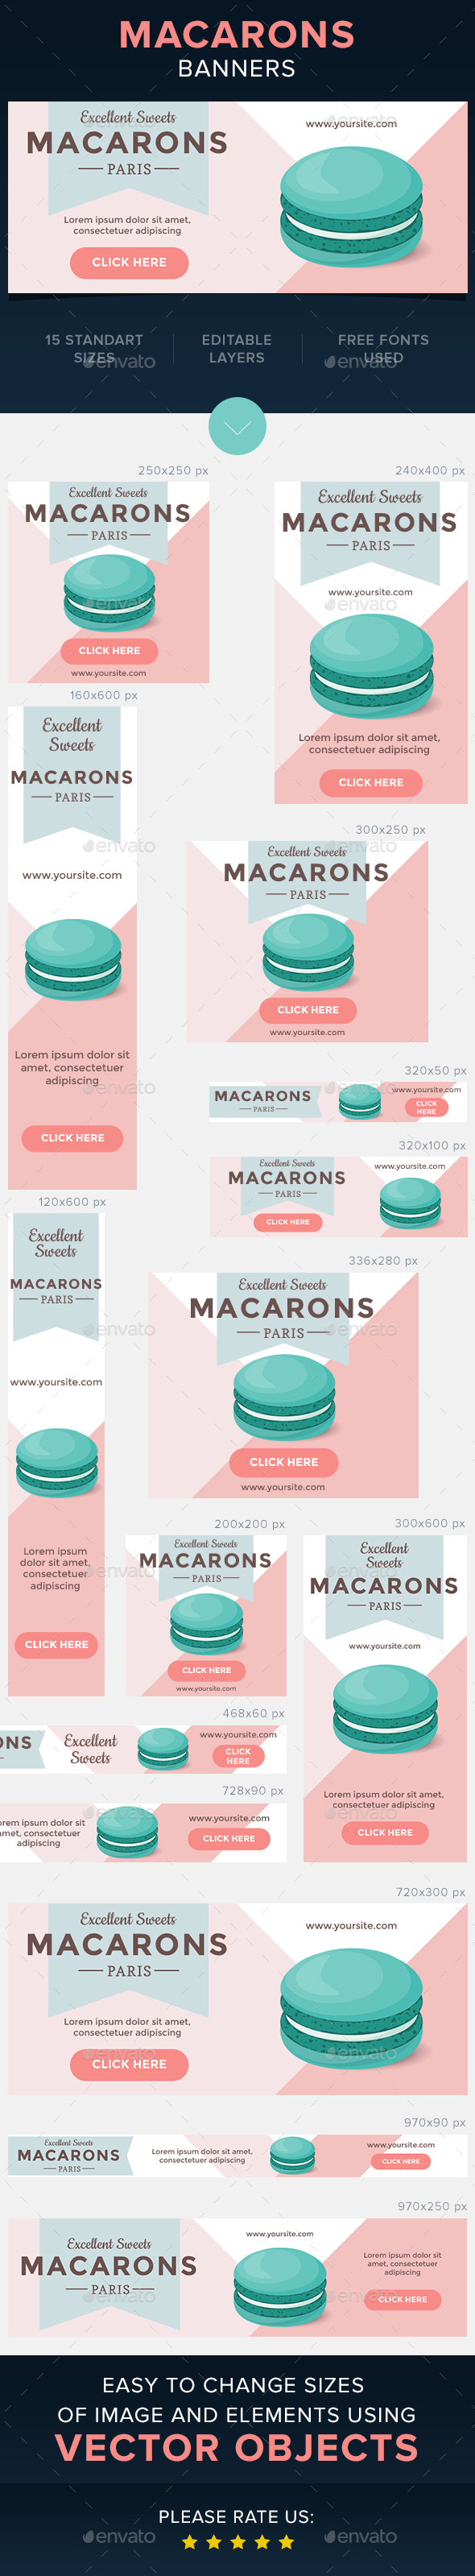 Macarons Banners - Banners & Ads Web Elements